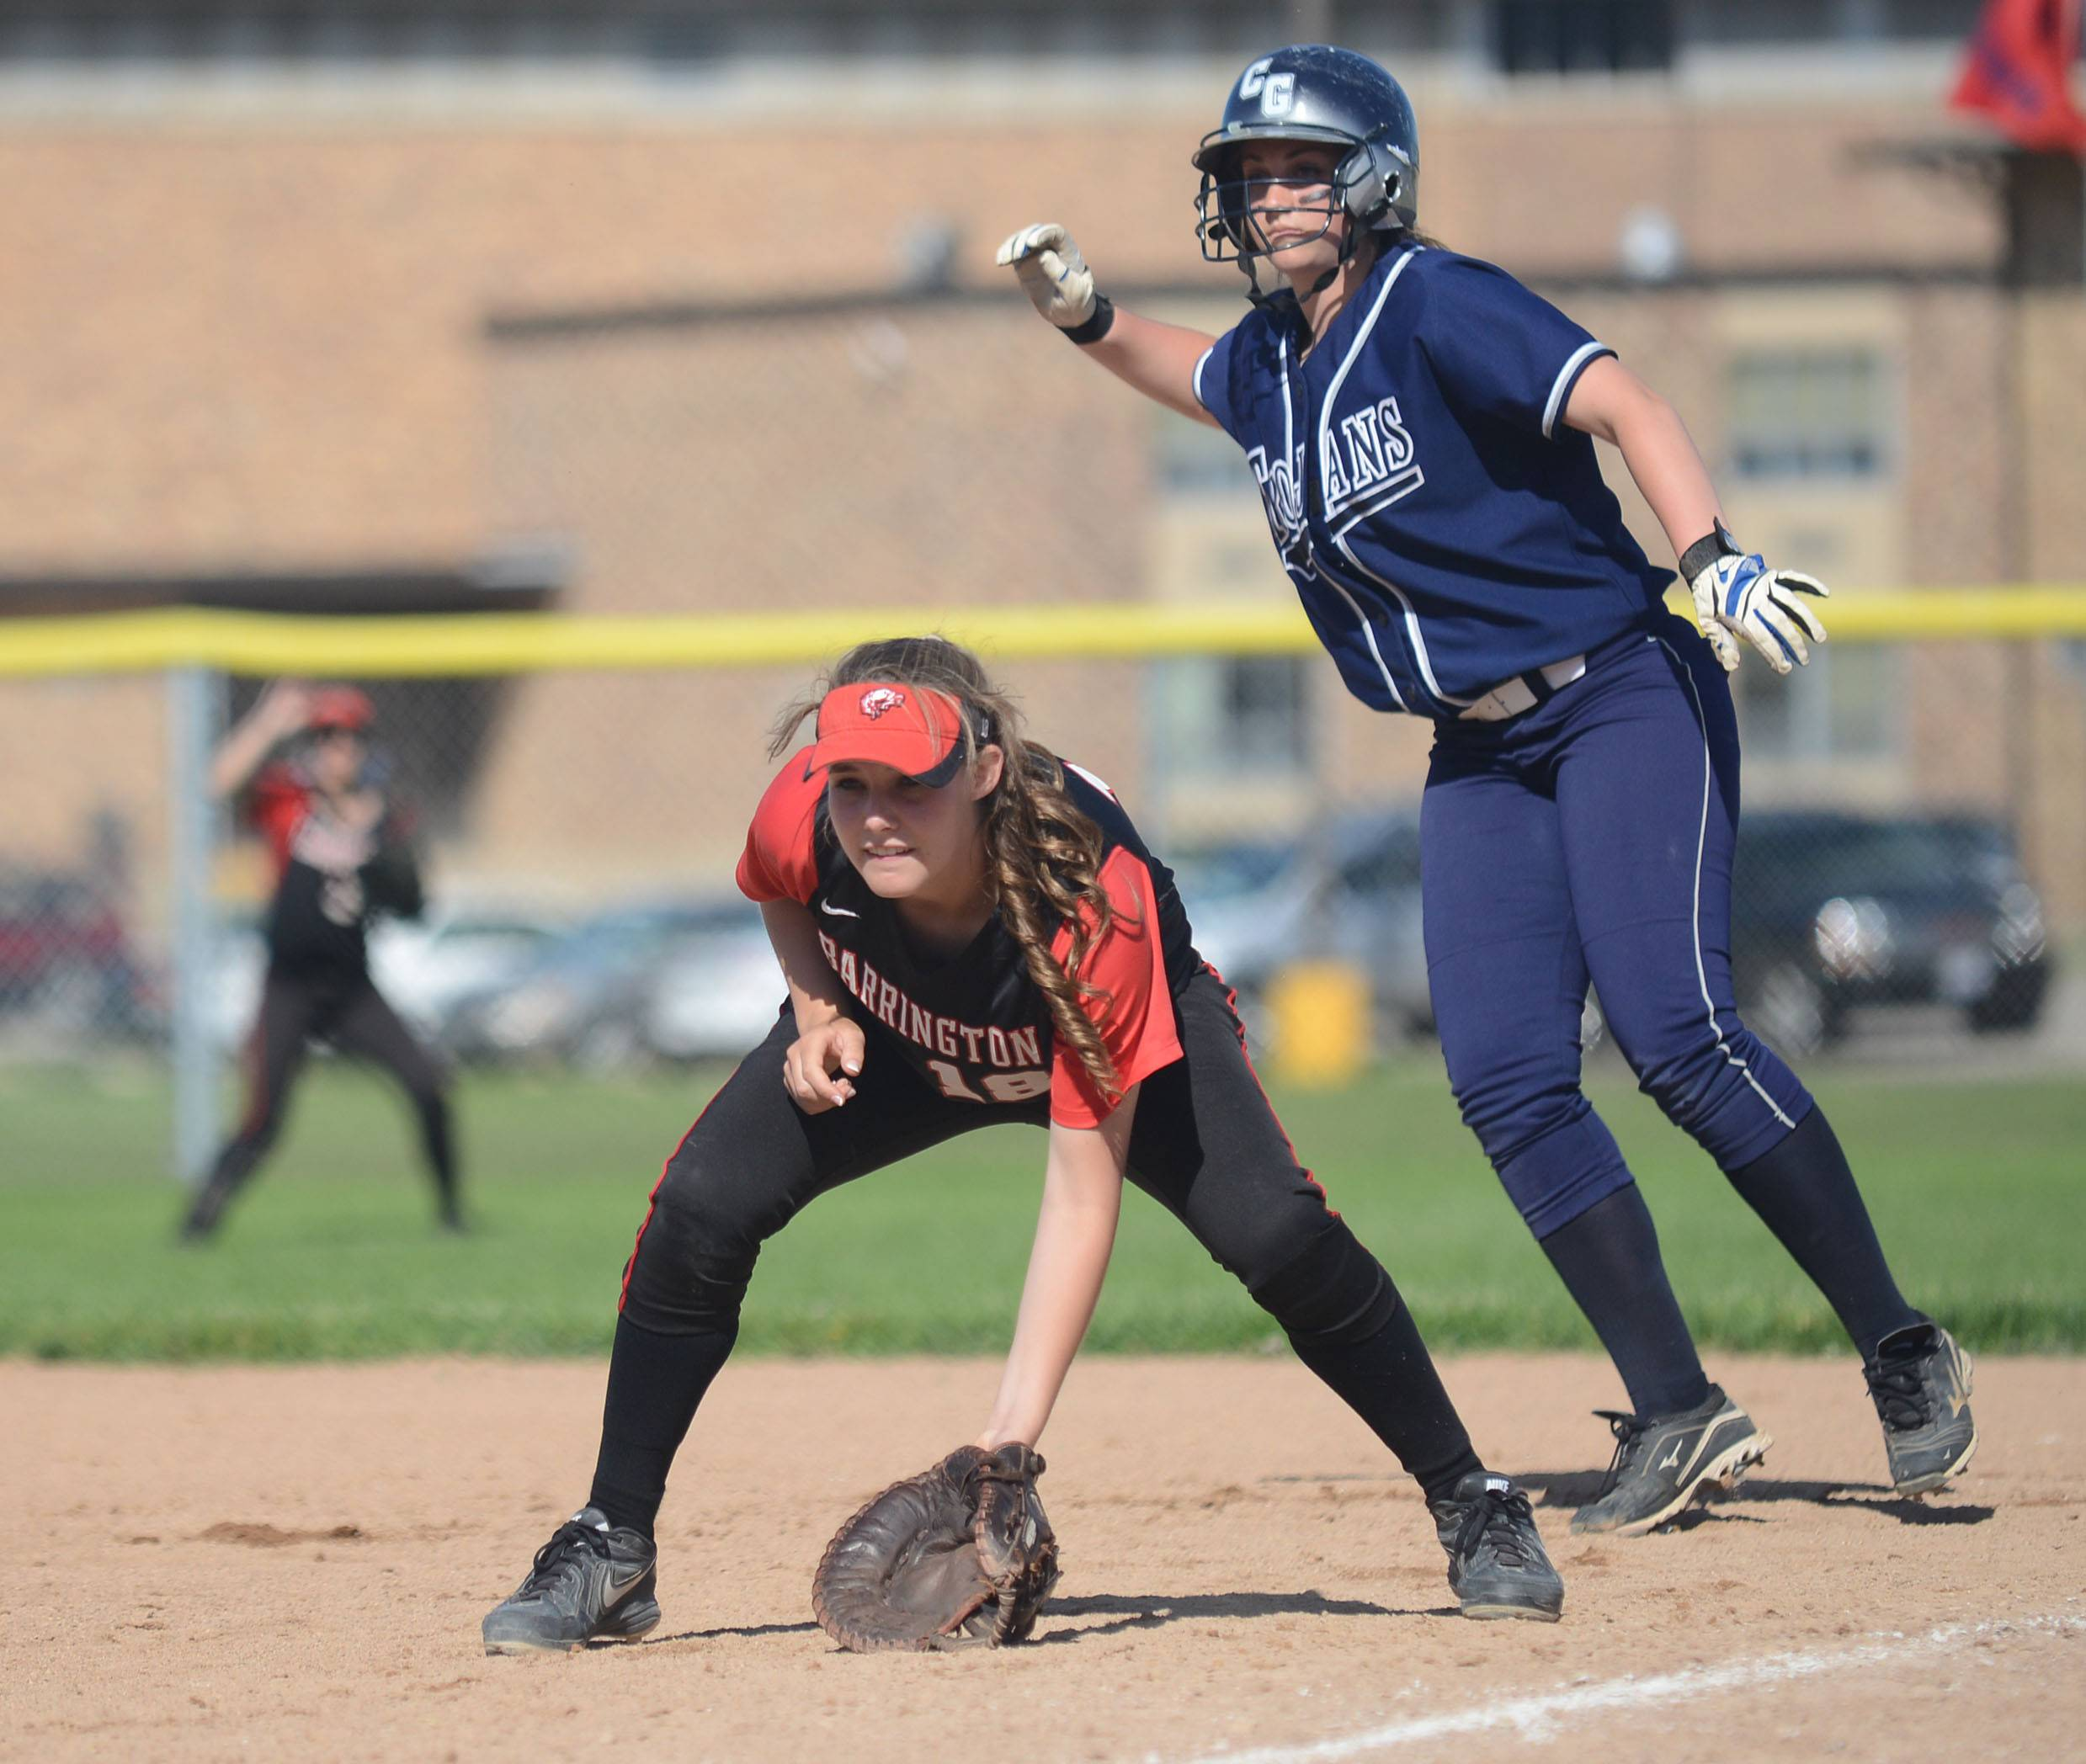 Cary-Grove's Caitlyn Adams leads off first and away from Barrington's Katie Dehnert in the fourth inning of the Class 4A girls softball regional championship in Cary on Friday, May 30.